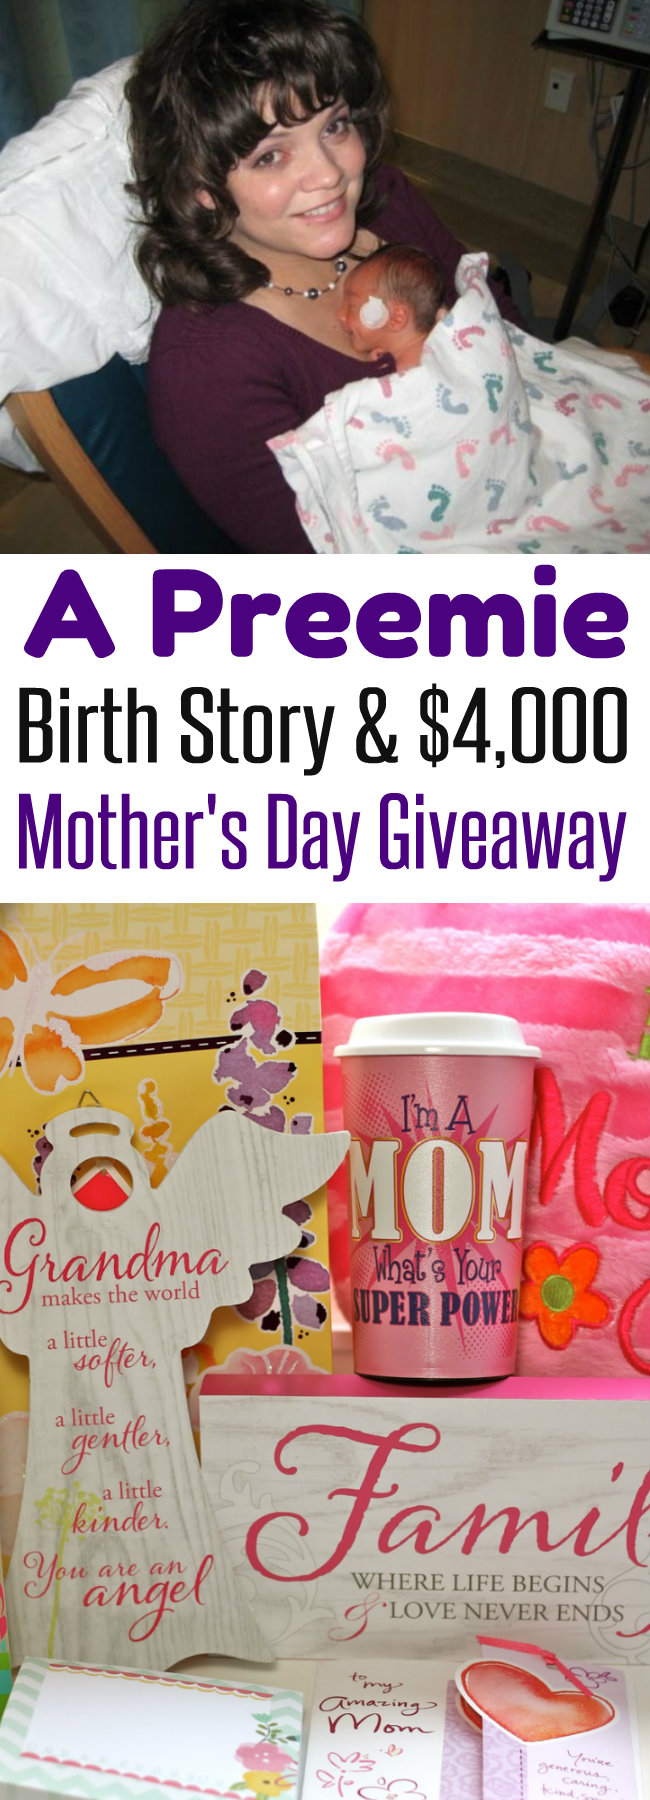 A Mother's Day to Remember A Preemie Birth Story and $4,000 Giveaway from HappyandBlessedHome.com